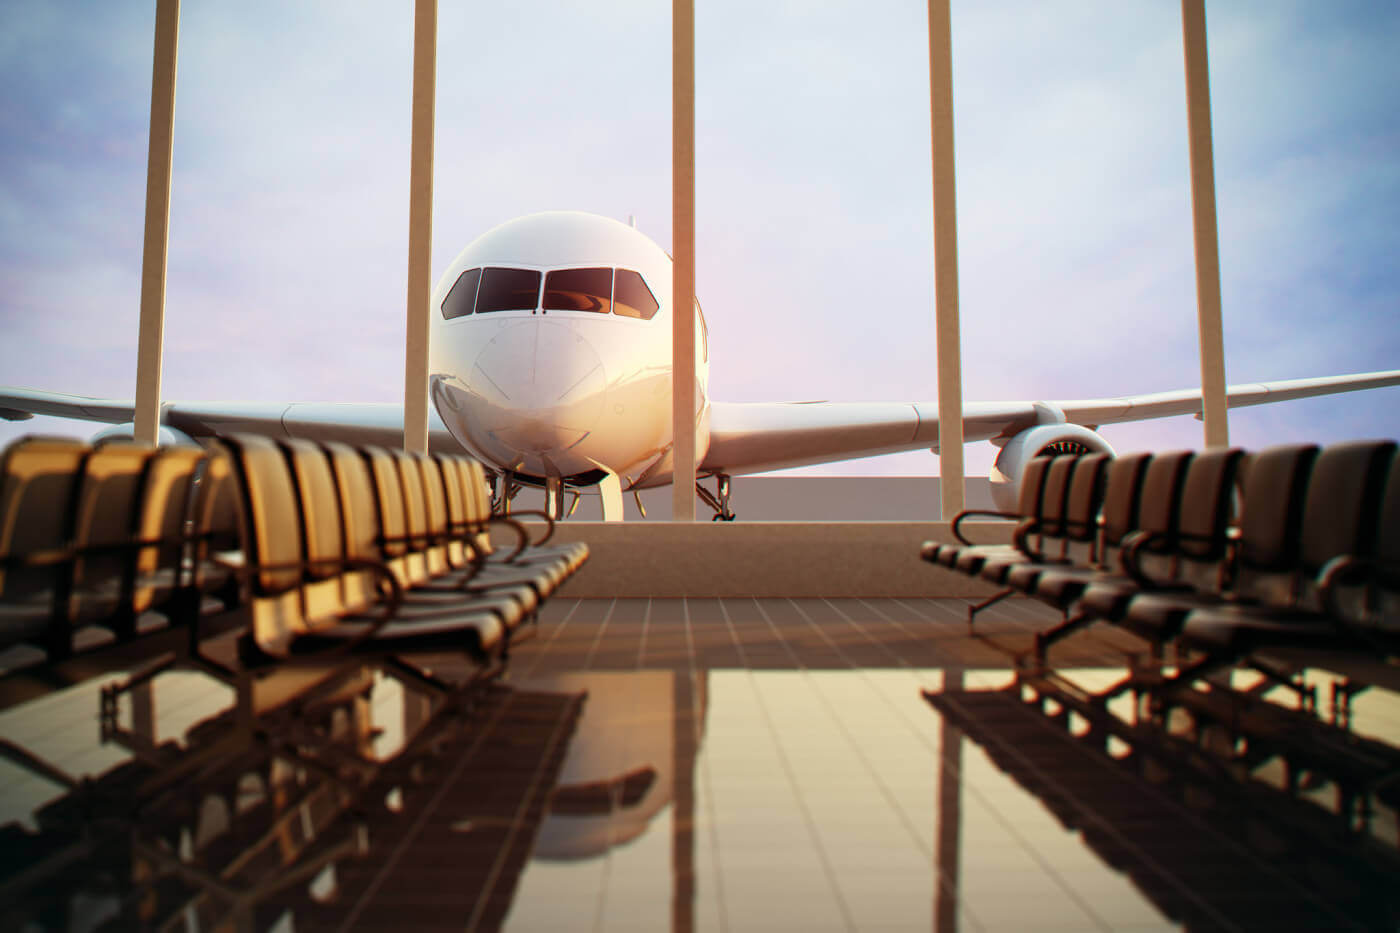 Measuring Loyalty: Tracking Passengers Who Fly With Competing Airlines